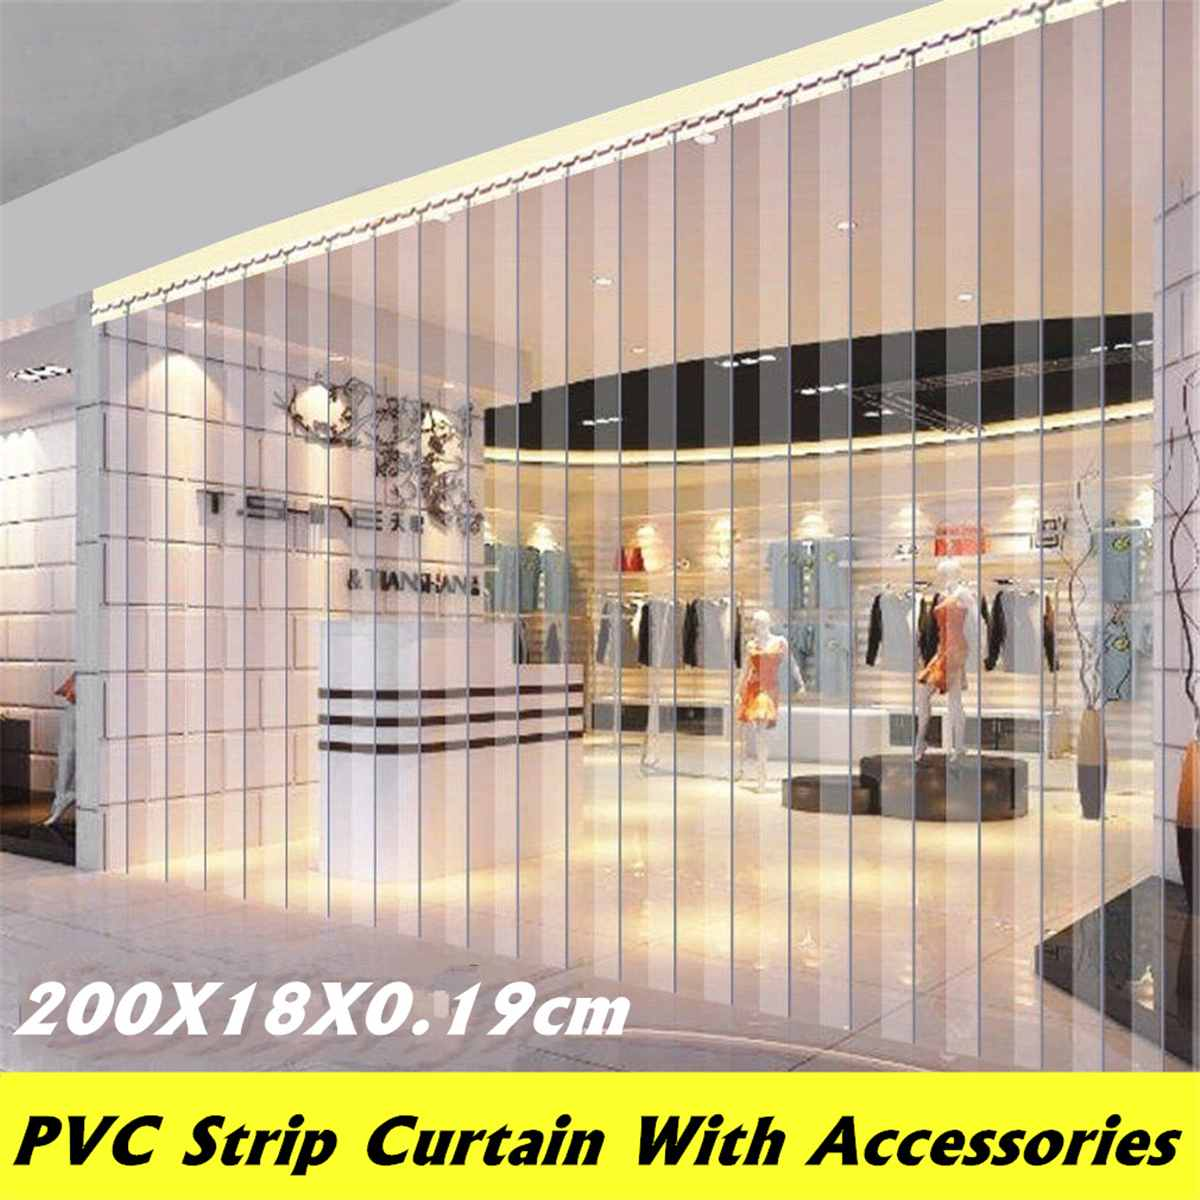 Curtain-Kit Strip Hanging-Rail Door Windproof Freezer PVC 200--18--0.19cm Warehouse Refrigeratory title=